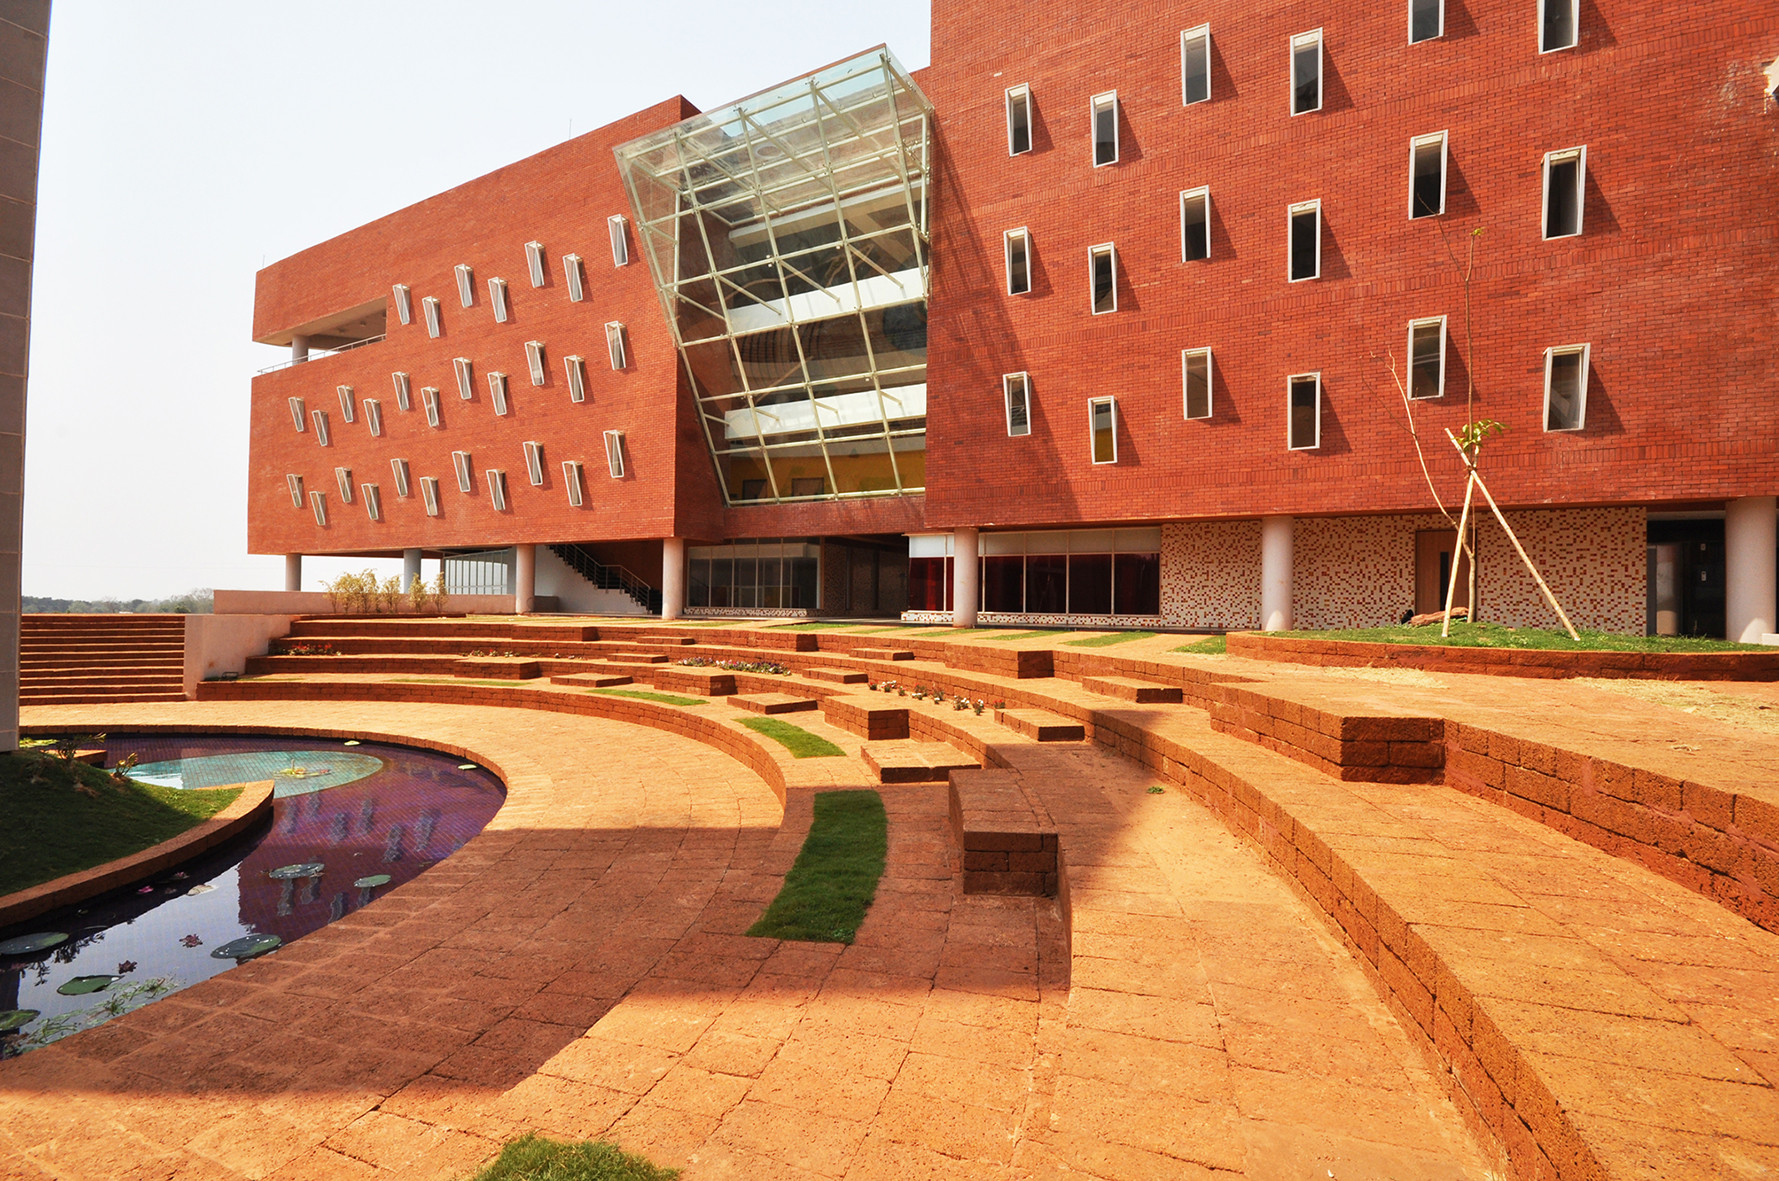 International Management Institute, Bhubaneswar: Library from the courtyard. Image Courtesy of Abin Design Studio